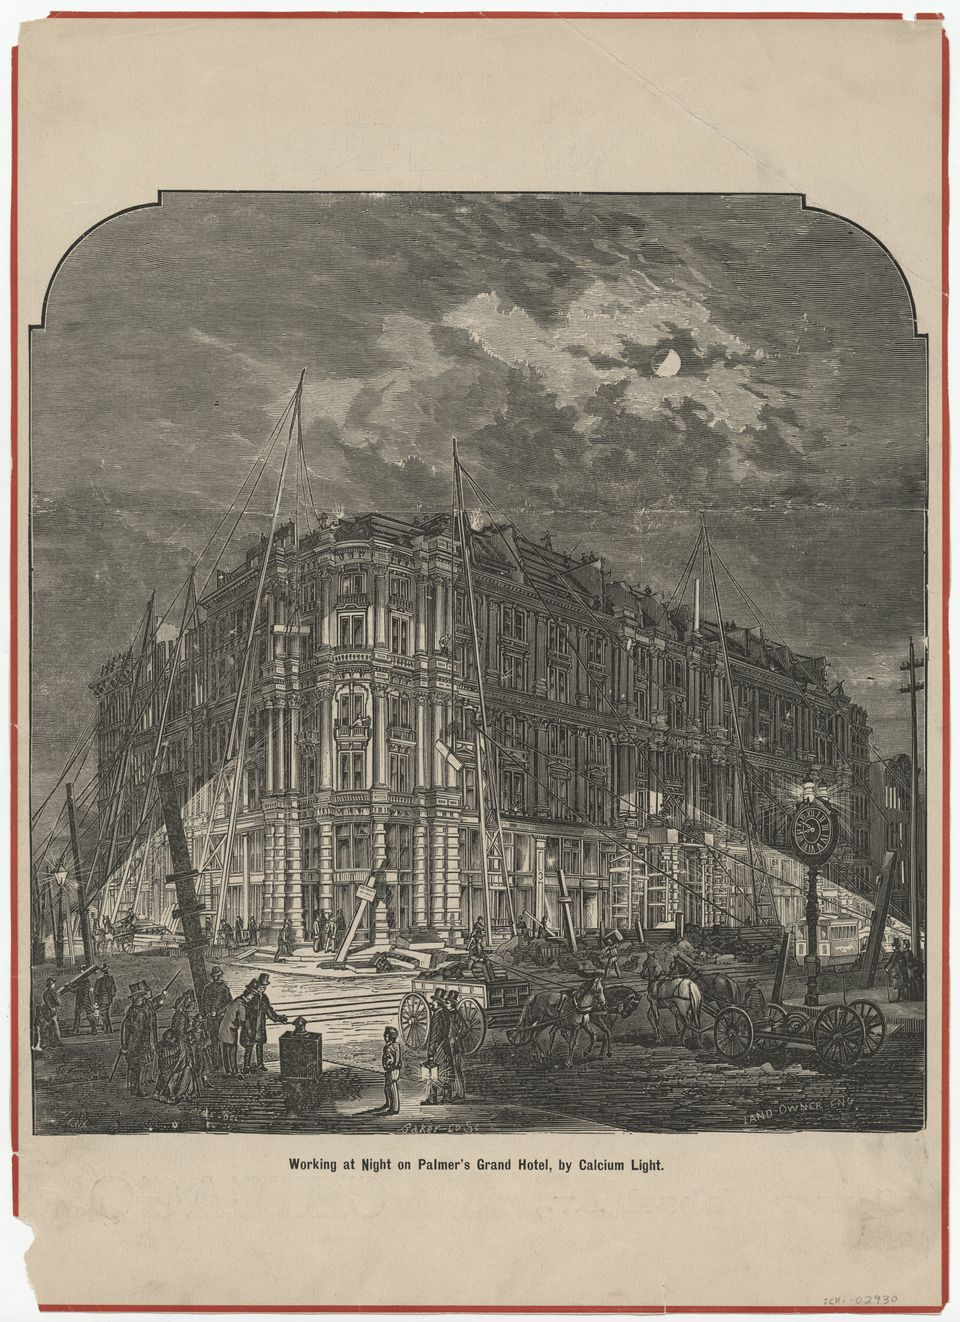 Illustration from the Land Owner of workers rebuilding the Palmer House hotel after the Great Chicago Fire, Chicago, Illinois